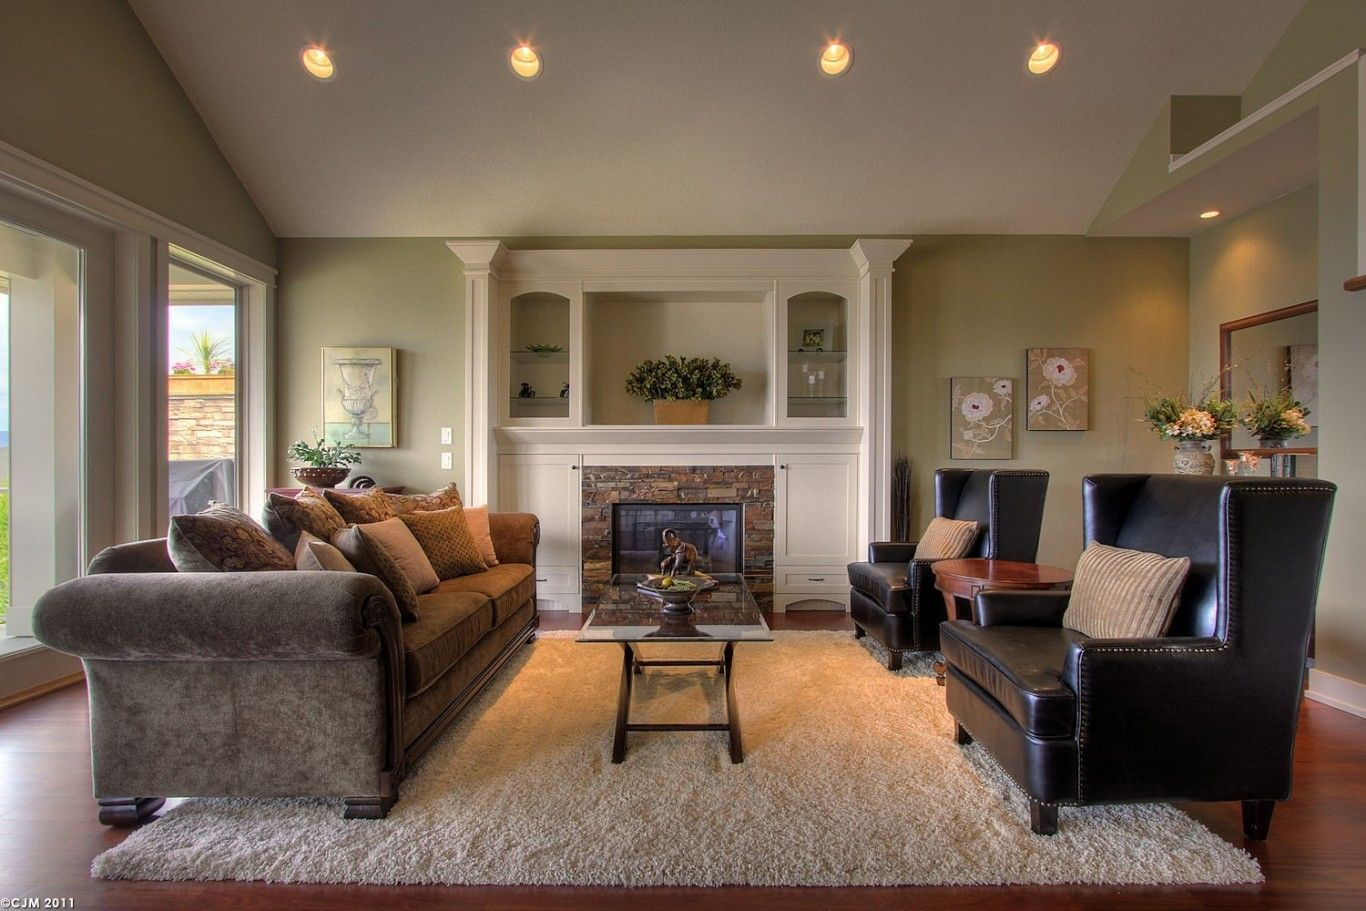 Why You Need A Extra Large Area Rugs For Living Room In 2020 Living Room Rug Placement Large Living Room Rugs Living Room Area Rugs